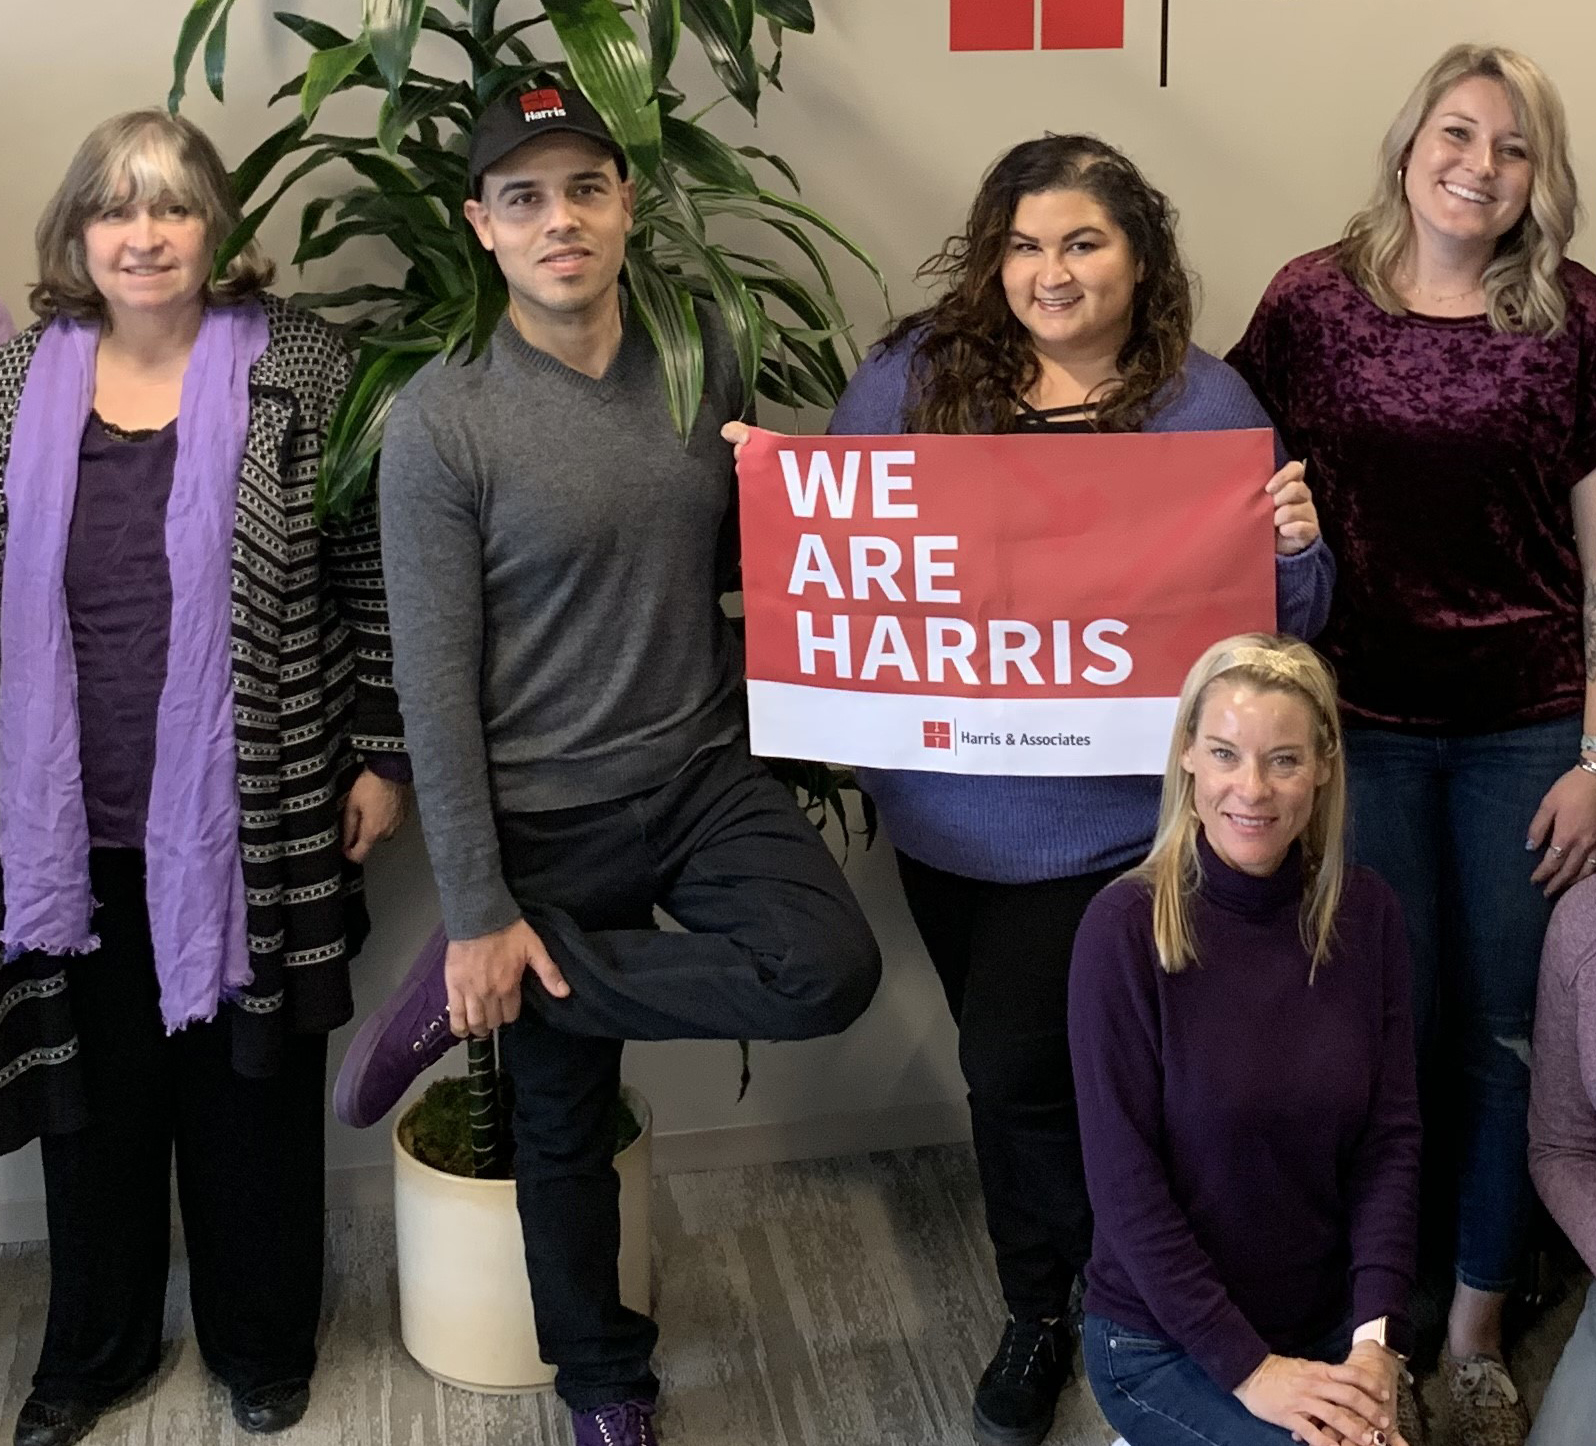 Harris employees donning the color purple to celebrate International Women's Day.